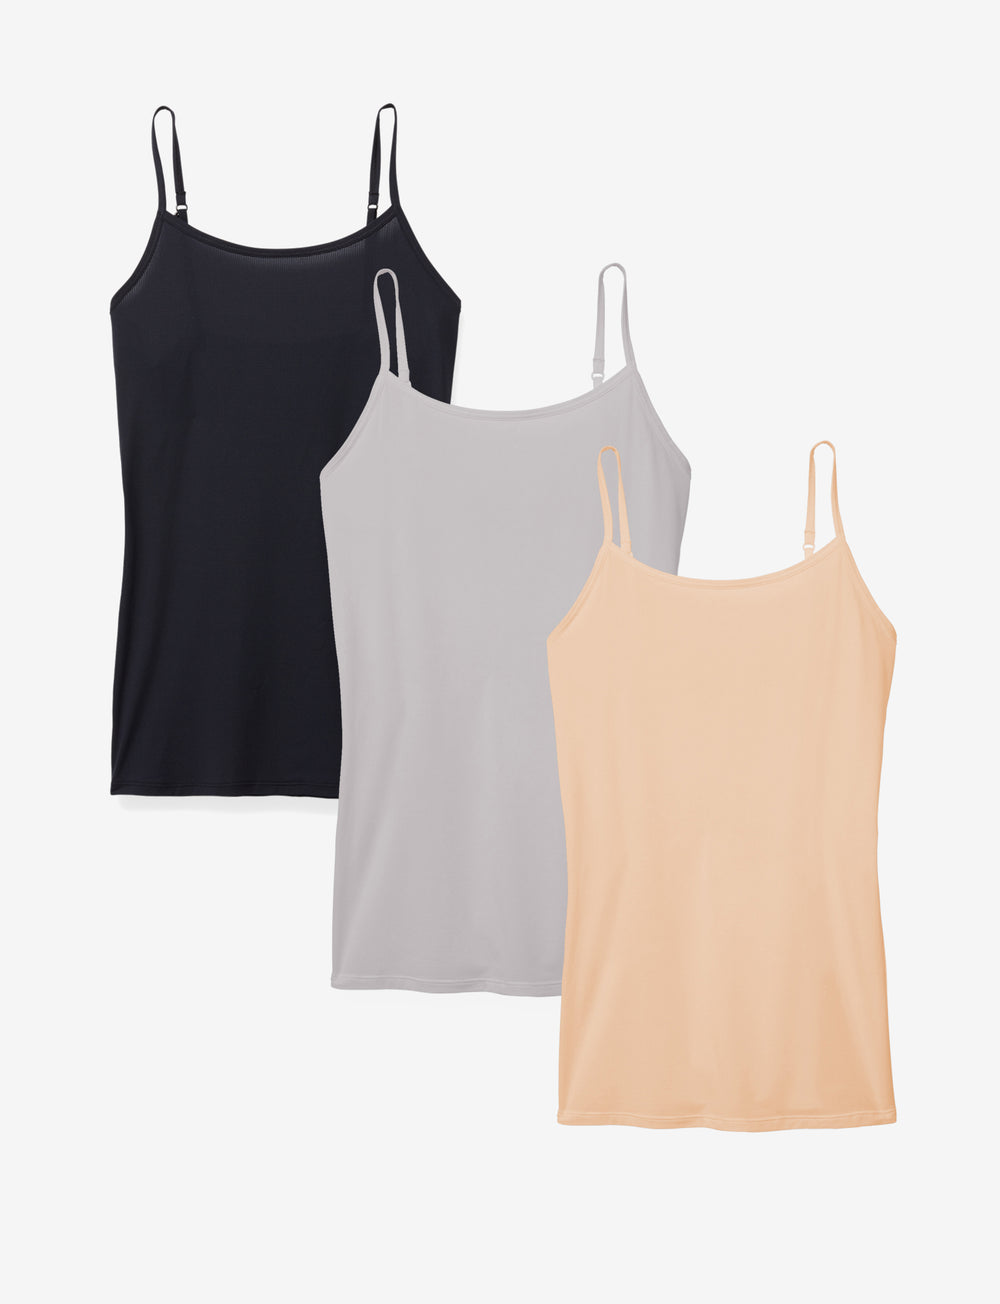 Women's Air Stay-Tucked Camisole 3 Pack Details Image